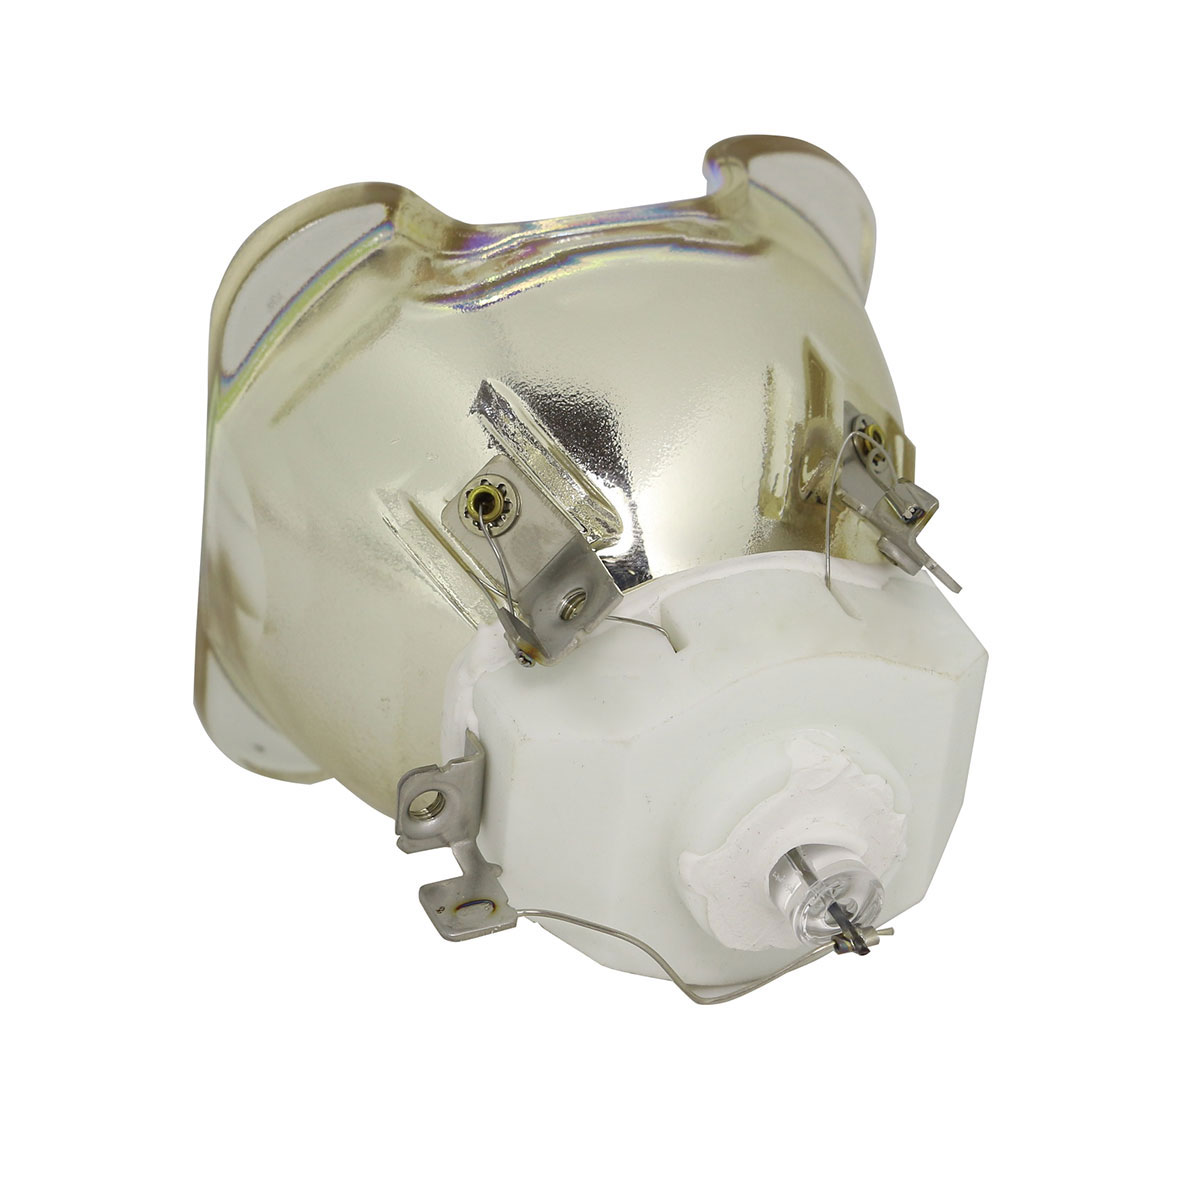 Lutema Economy Bulb for Sanyo DXL2000 Projector (Lamp with Housing) - image 2 de 5